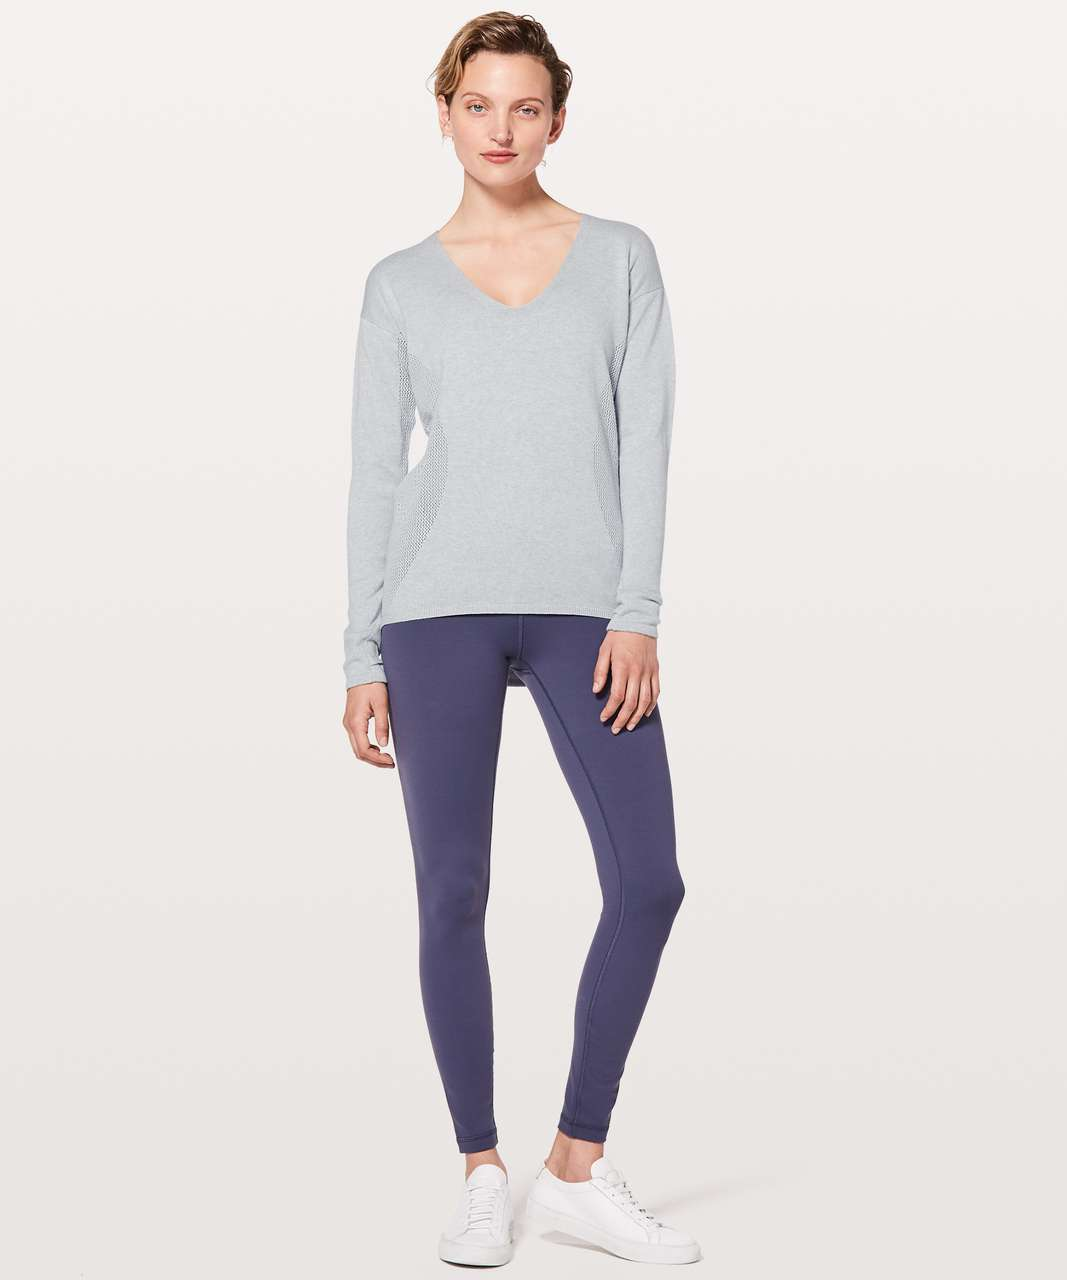 Lululemon Still Movement Sweater - Heathered Dawn Blue